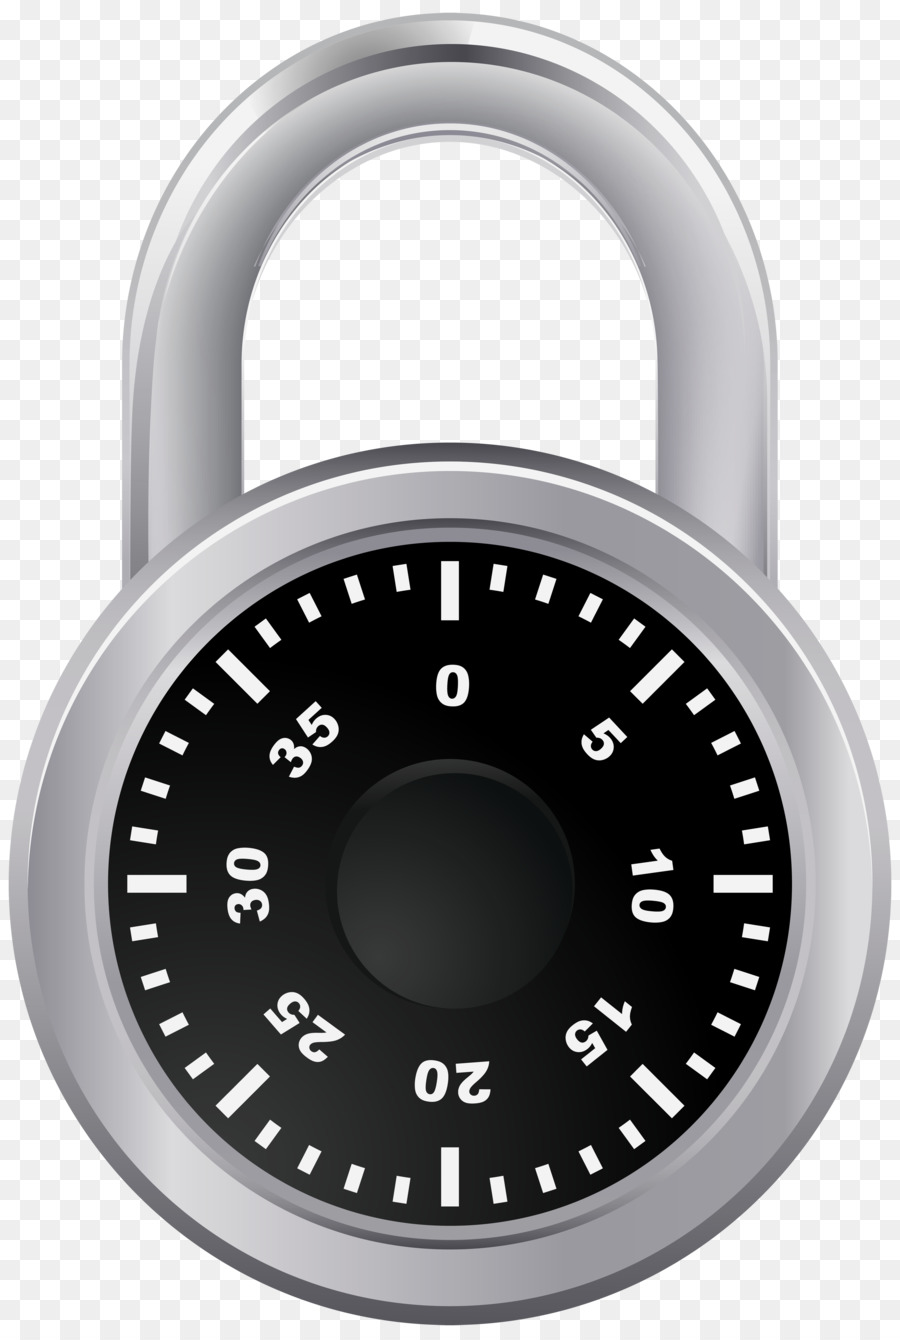 transparent combination lock clipart Combination lock Master.